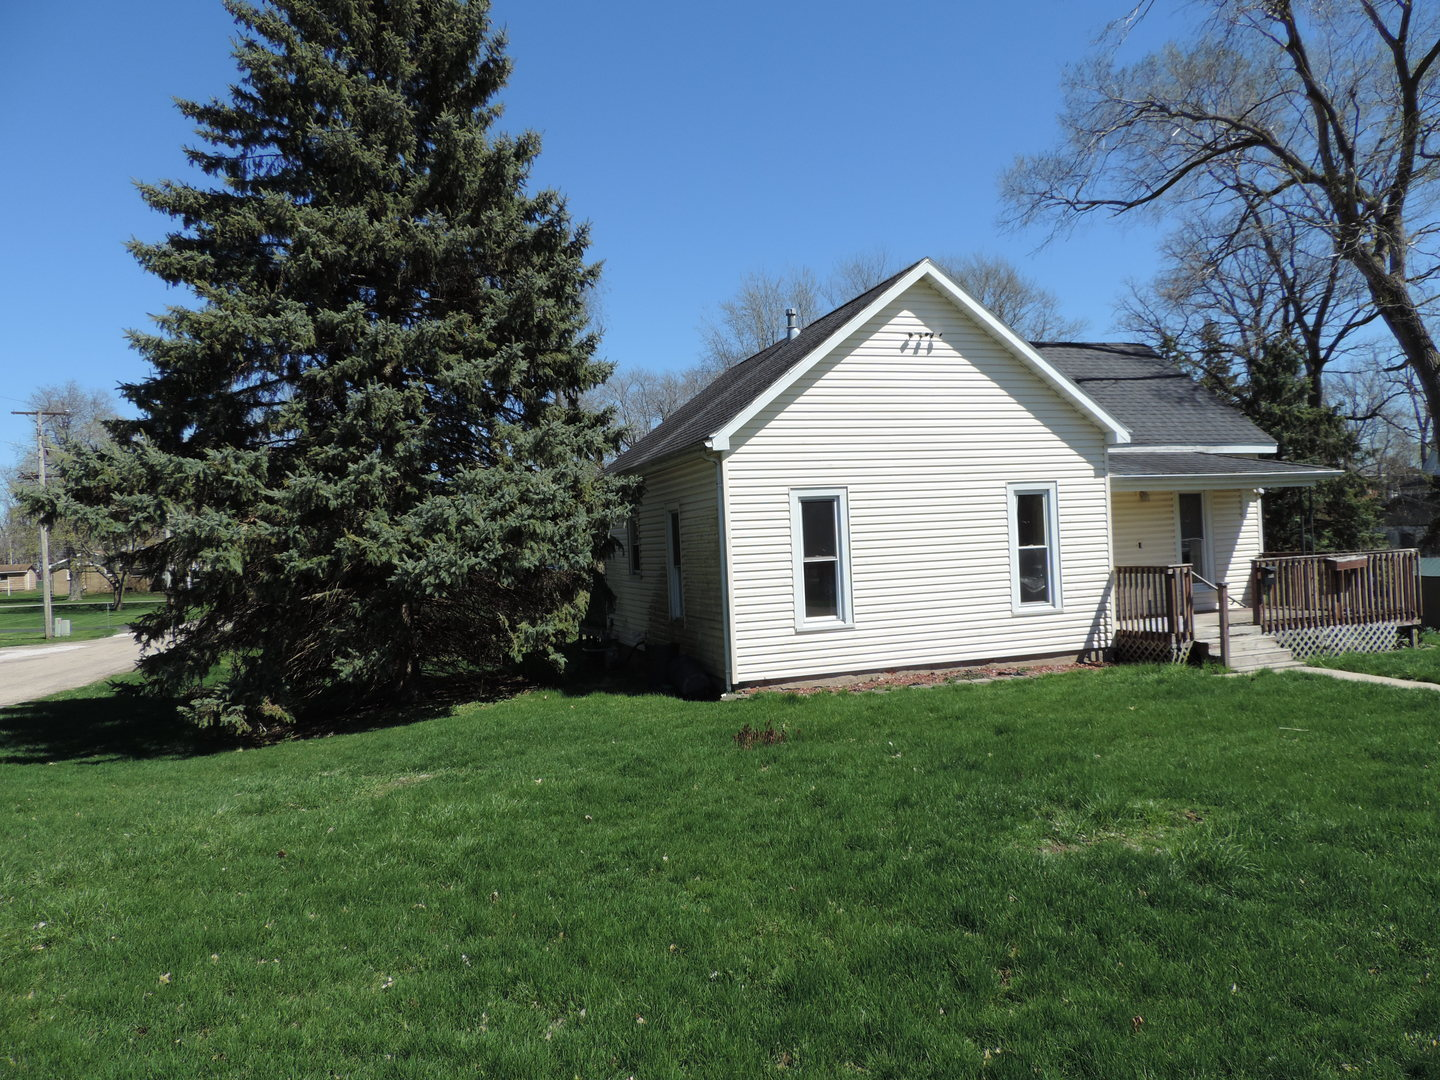 107 North Putnam, Lostant, Illinois, 61334